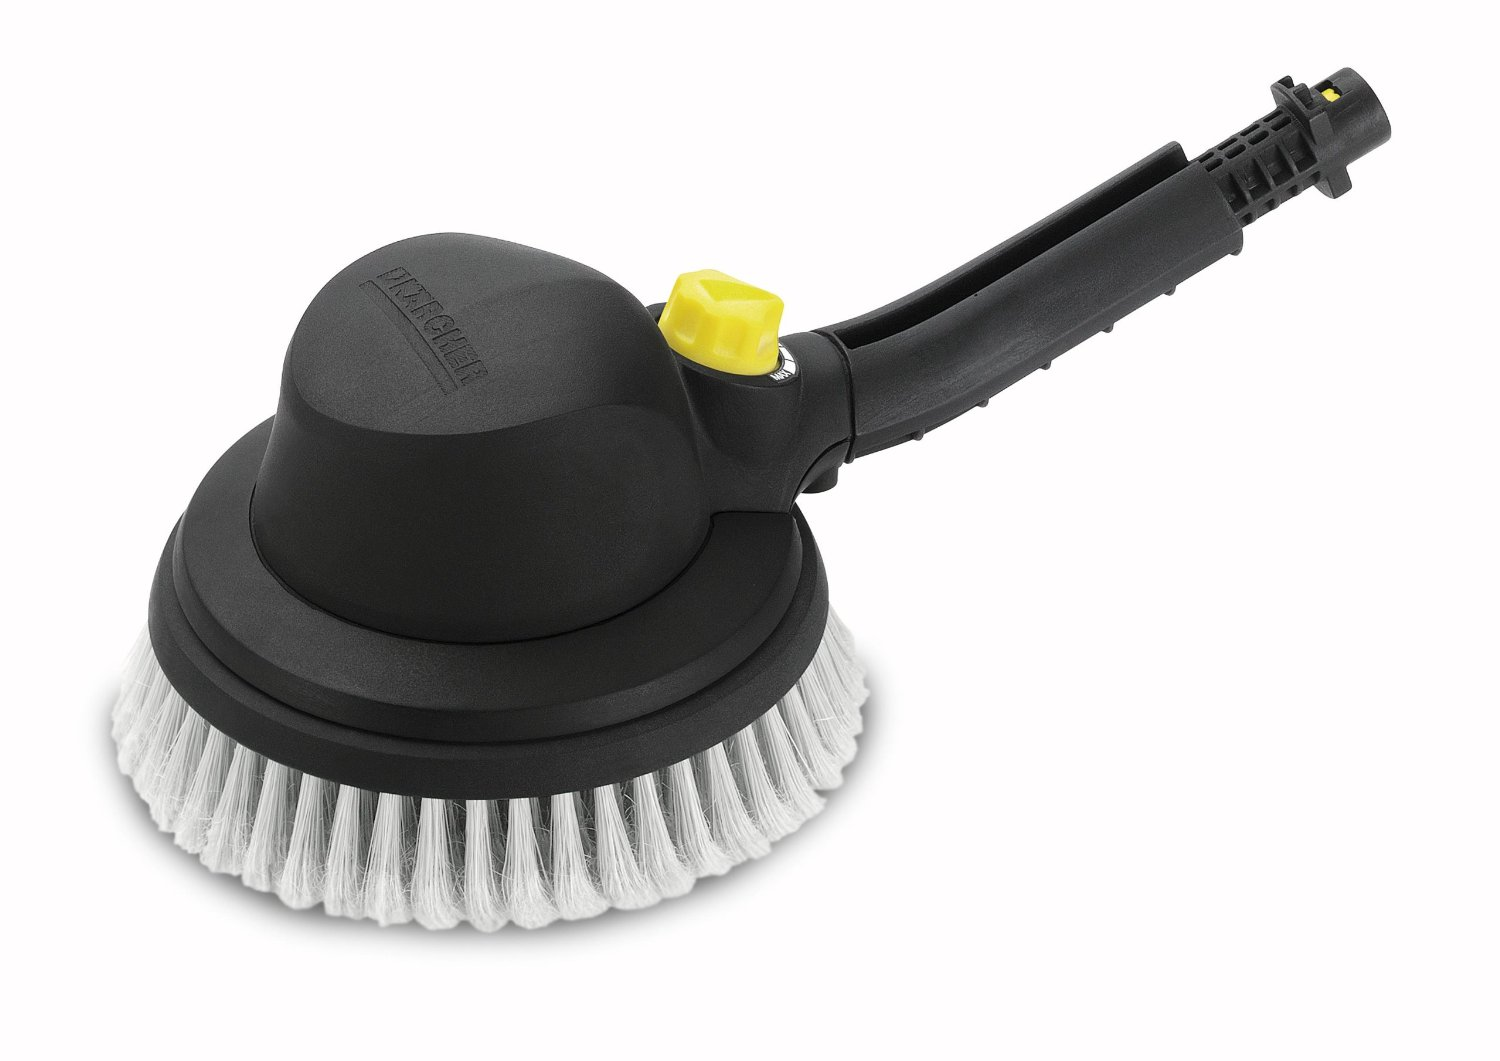 Karcher 2.642-786.0 Rotating Wash Brush Accessory for Electric Pressure Washers by Karcher